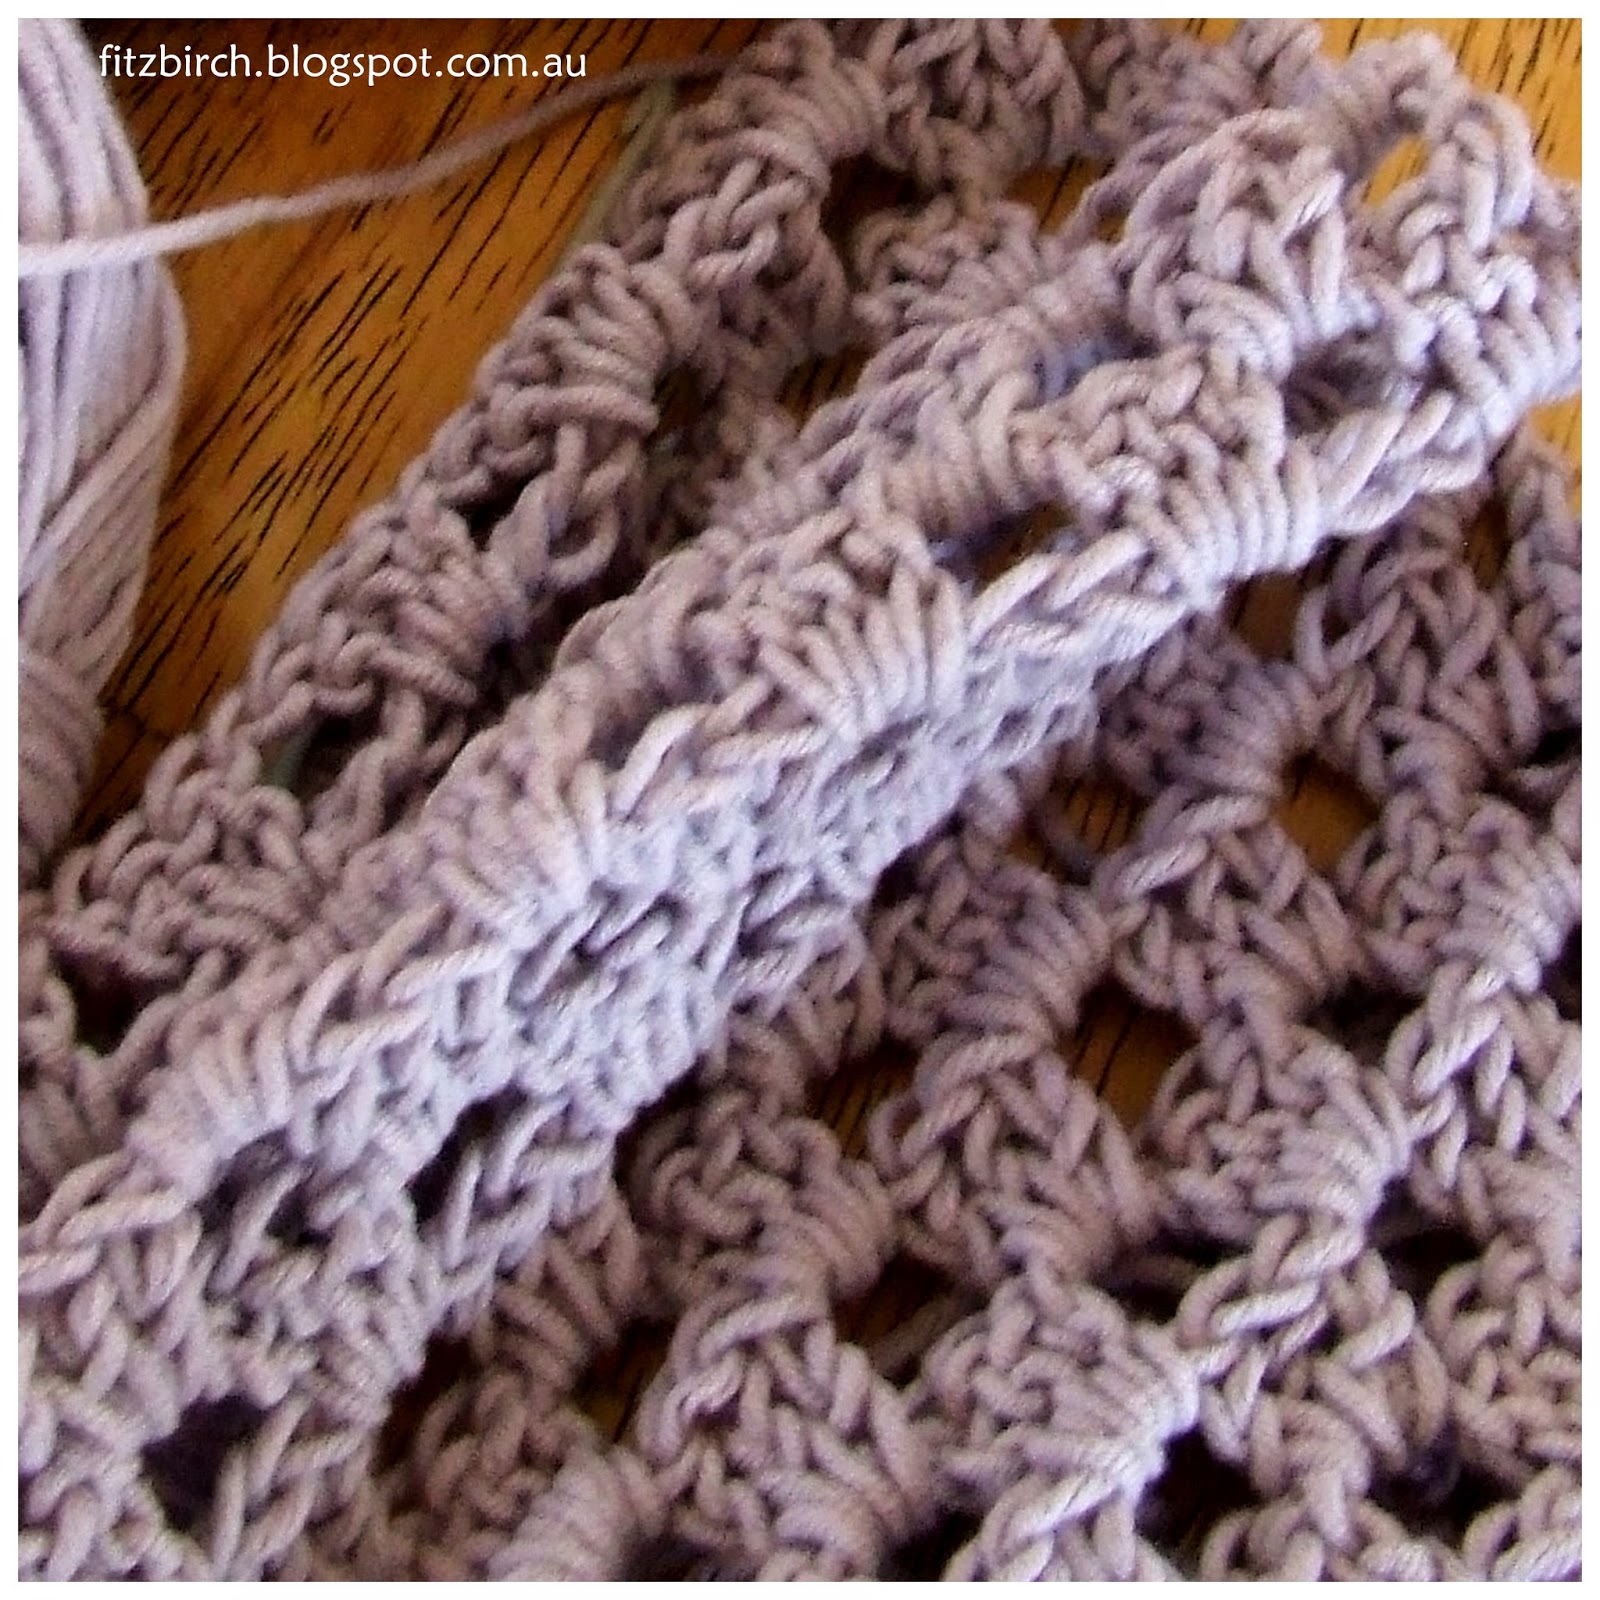 fitzbirch crafts welcome to melbourne scarf